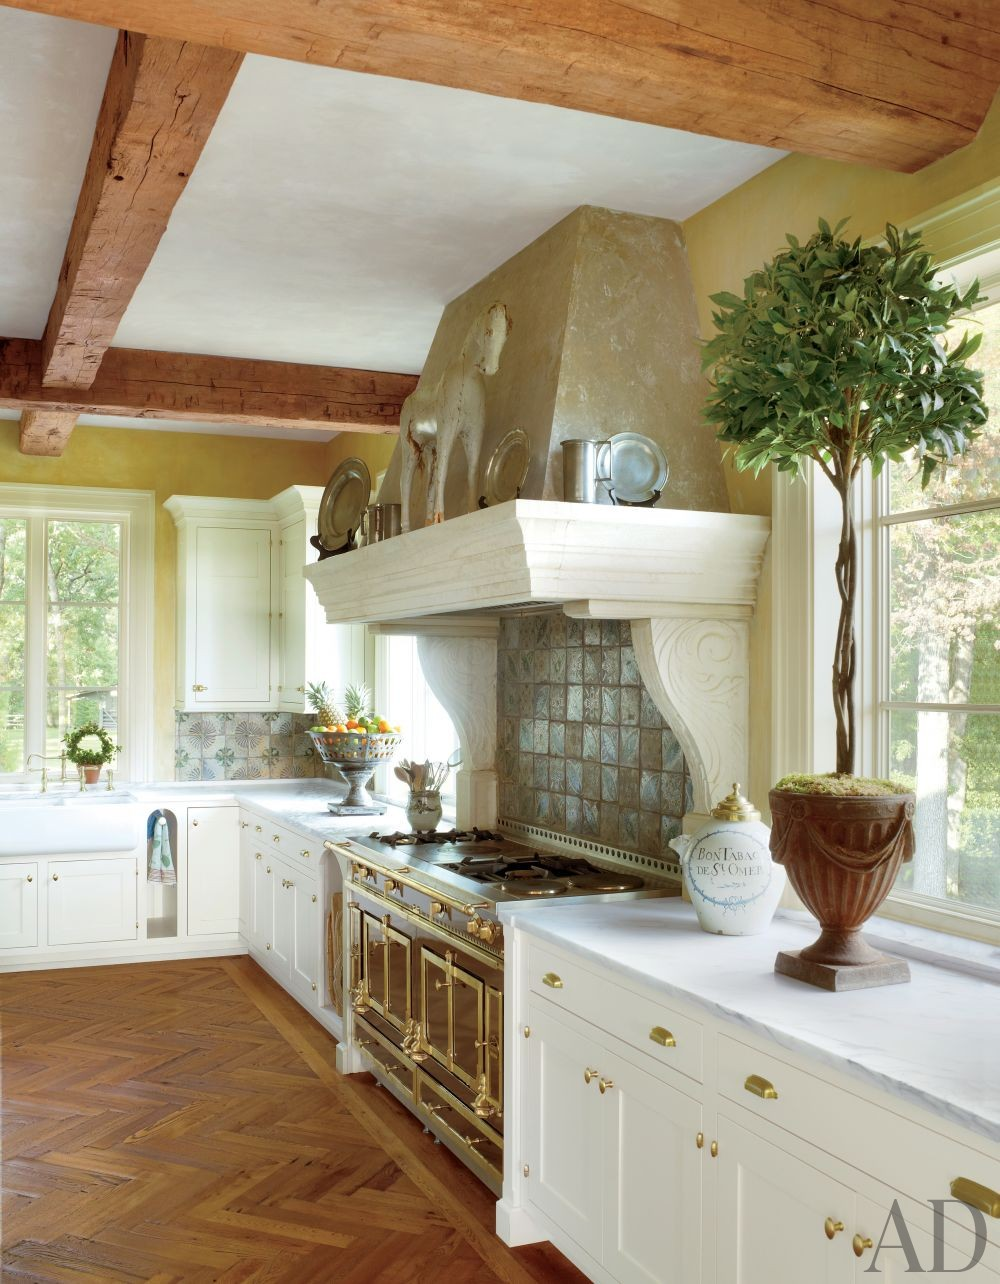 Traditional Kitchen by Bunny Williams Inc. and 3north in Richmond, Virginia